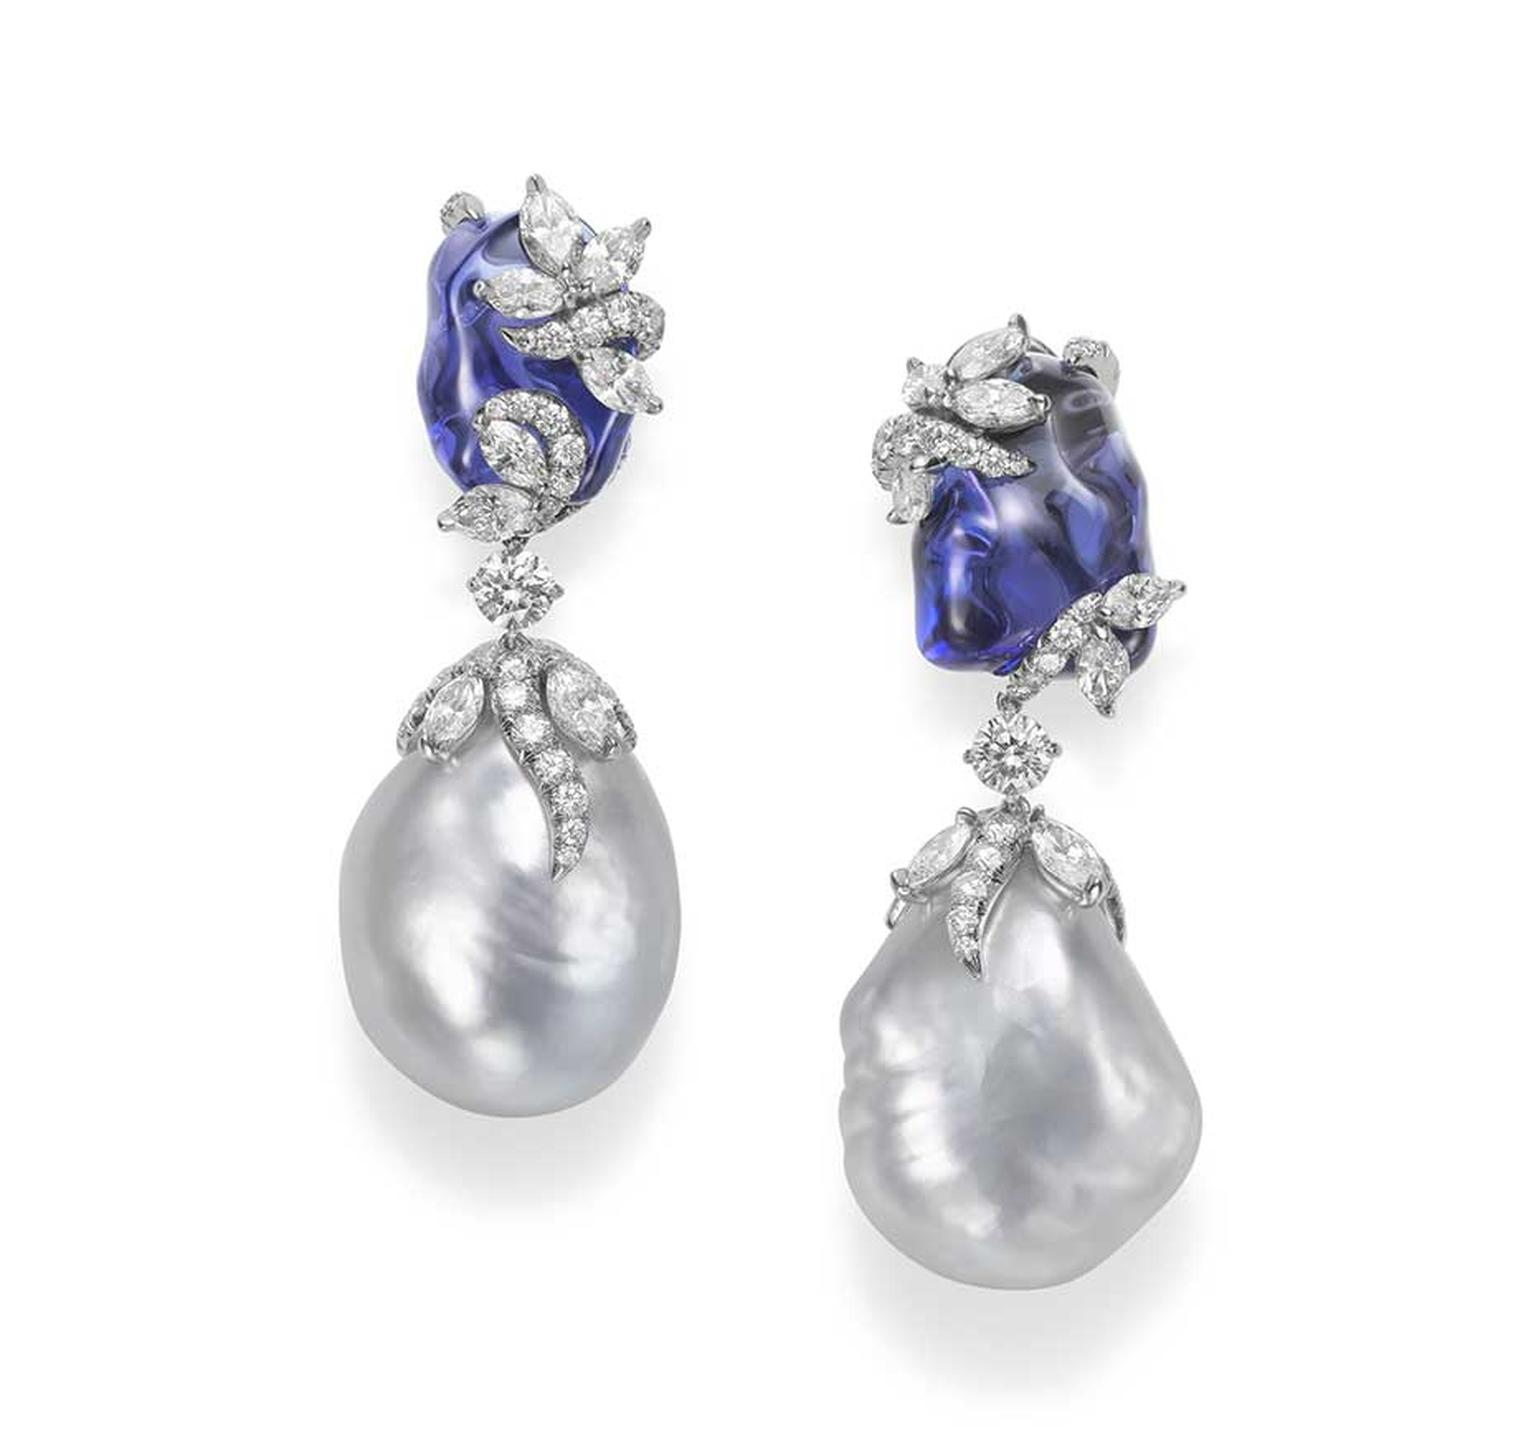 Mikimoto Hyacinthia earrings with baroque South Sea cultured pearls, tumbled tanzanites and diamonds.